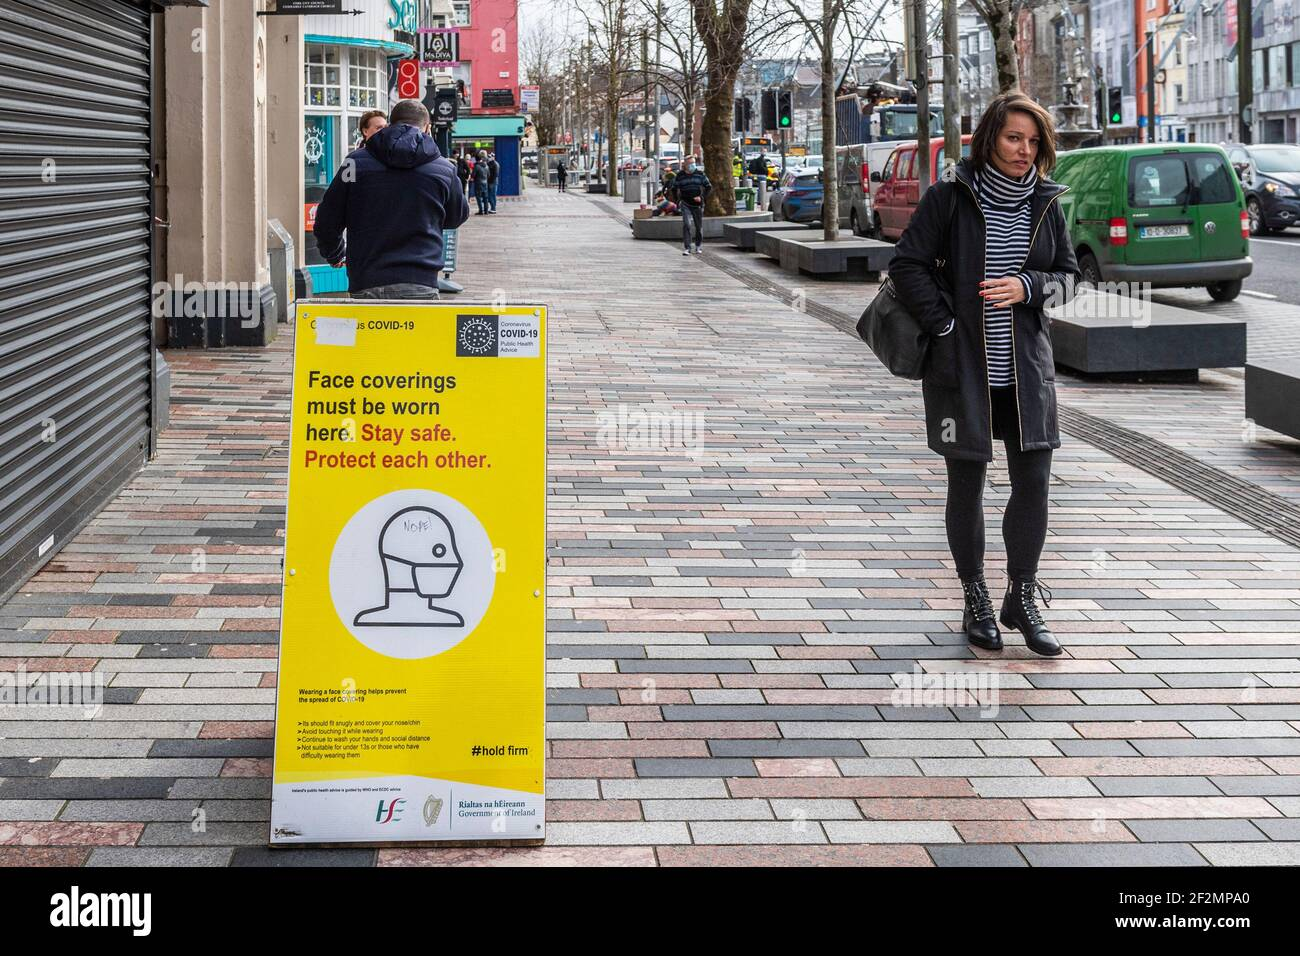 cork-ireland-12th-mar-2021-cork-city-centre-was-busy-with-people-today-despite-covid-19-level-5-restrictions-the-irish-government-has-said-restrictions-will-be-eased-on-5th-april-credit-ag-newsalamy-live-news-2F2MPA0.jpg